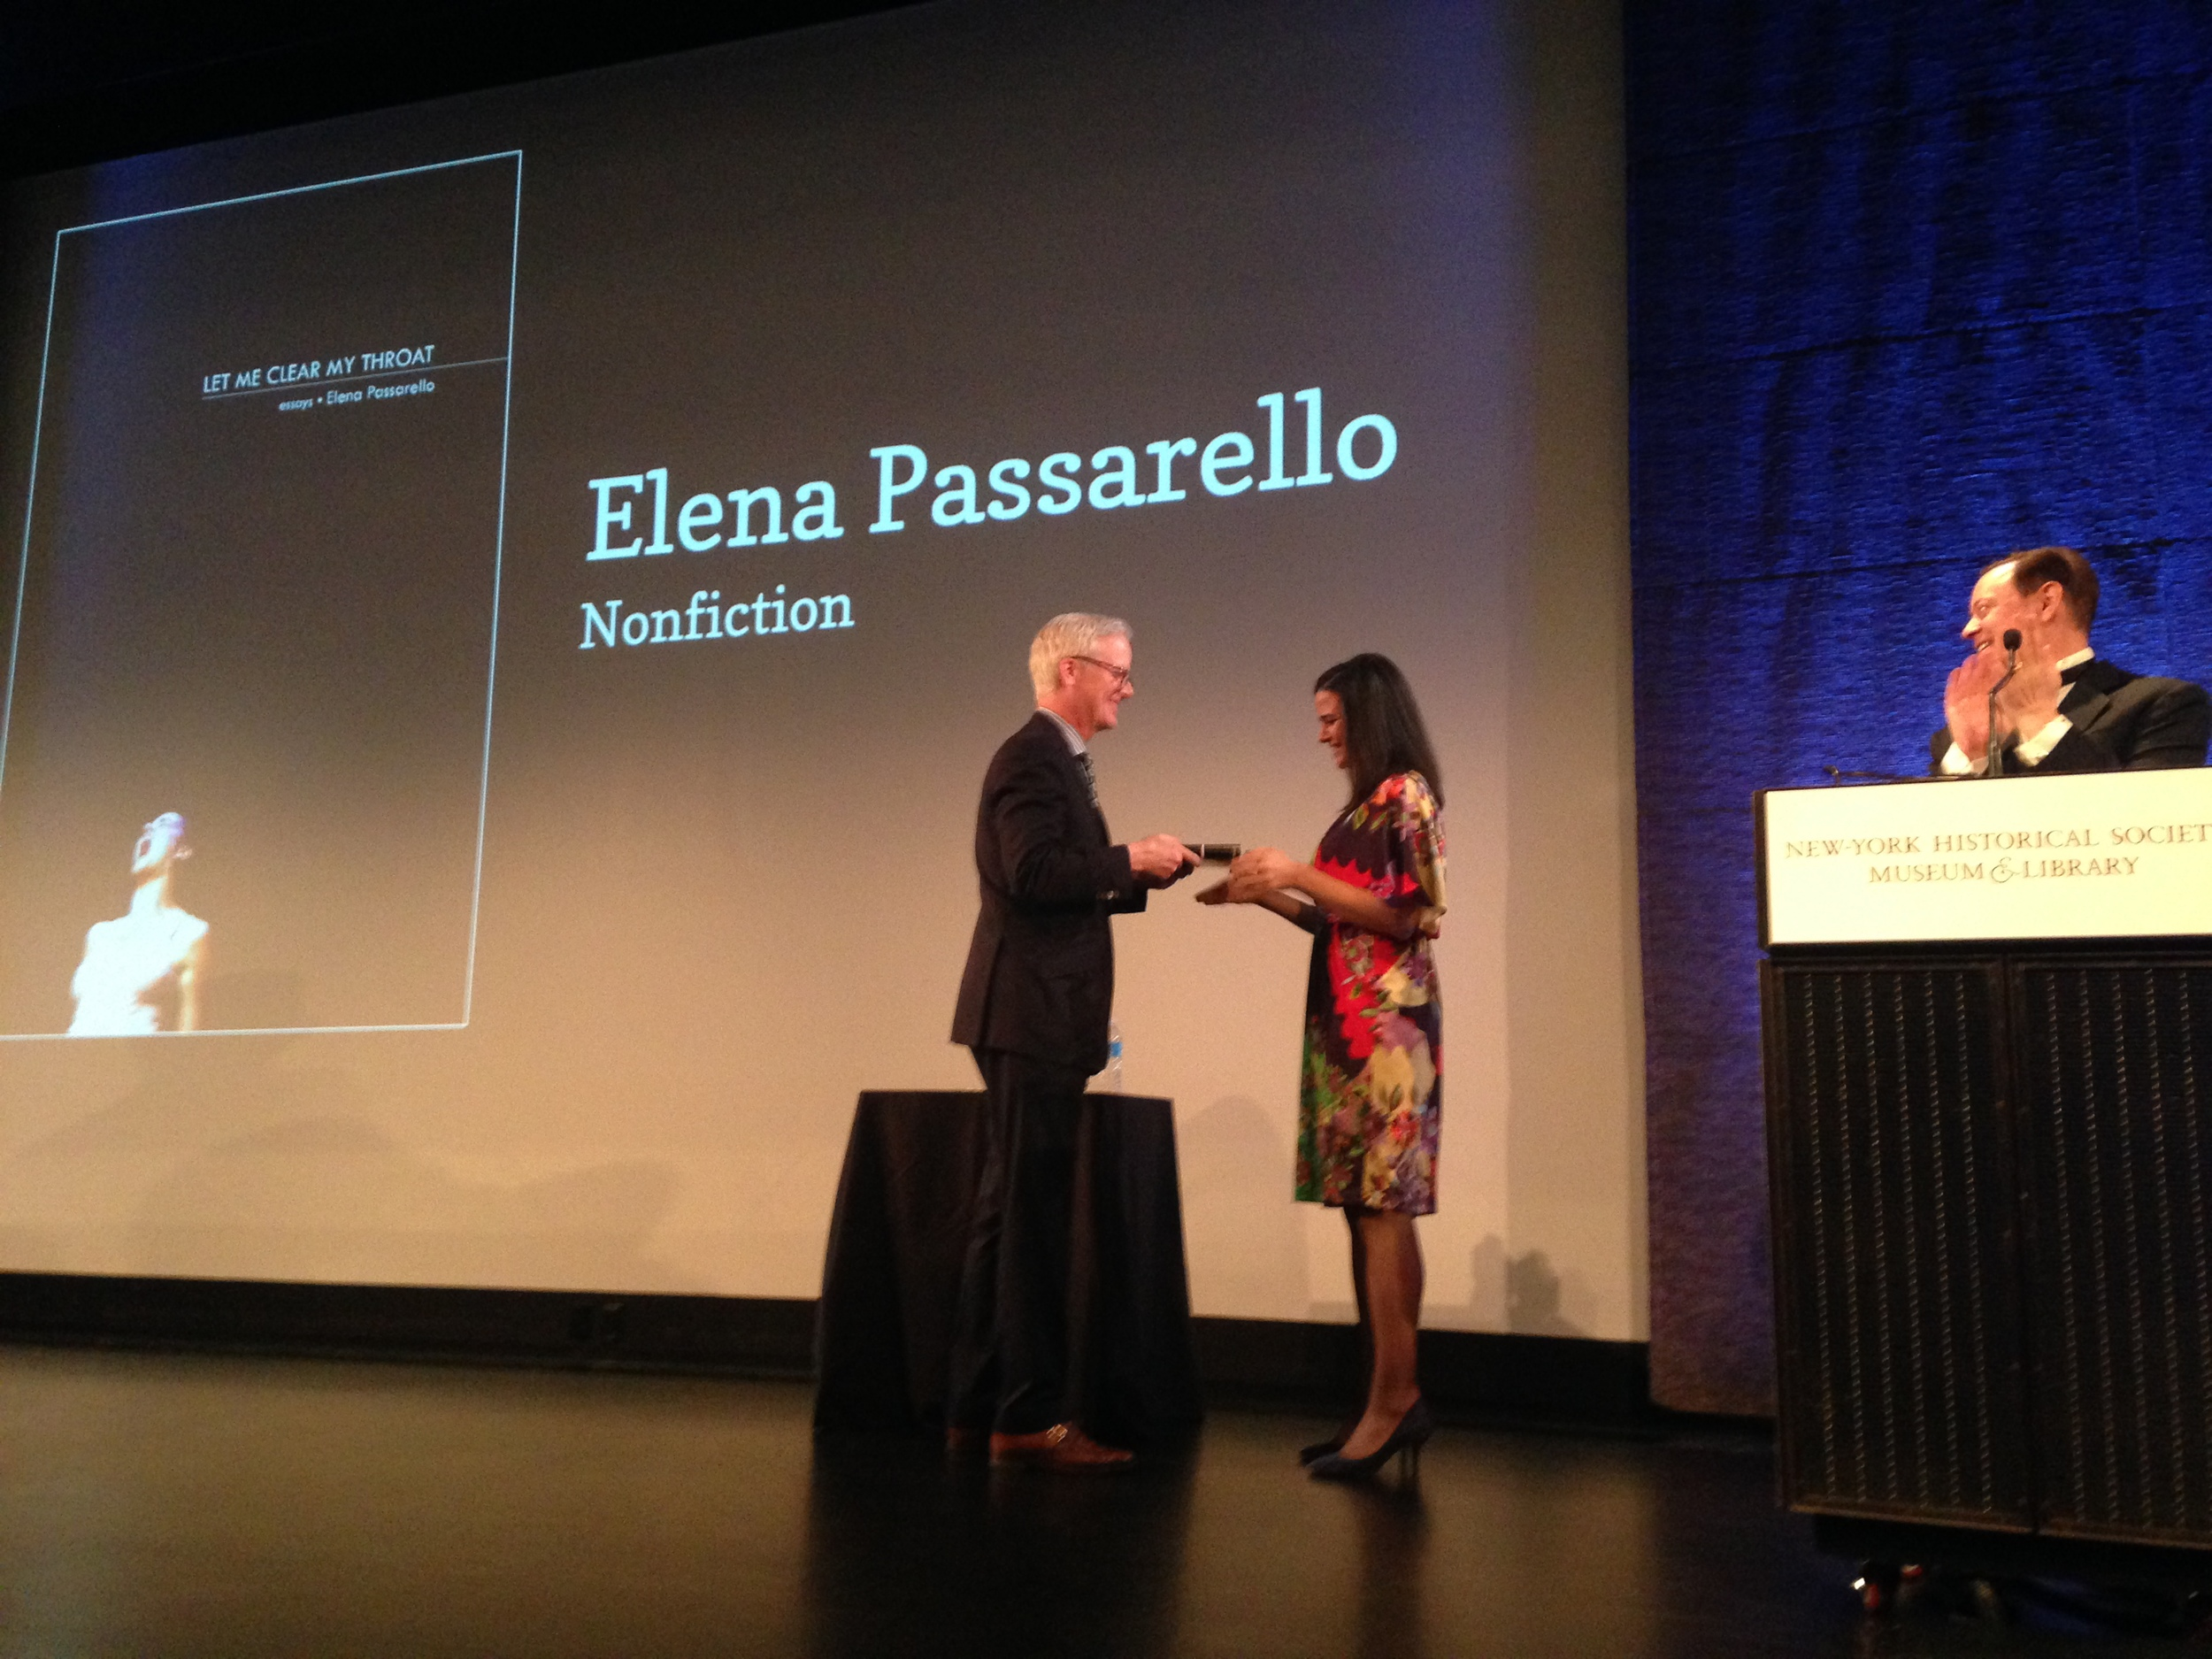 Elena Passarello accepts her award at the New York Historical Society on March 5, 2015